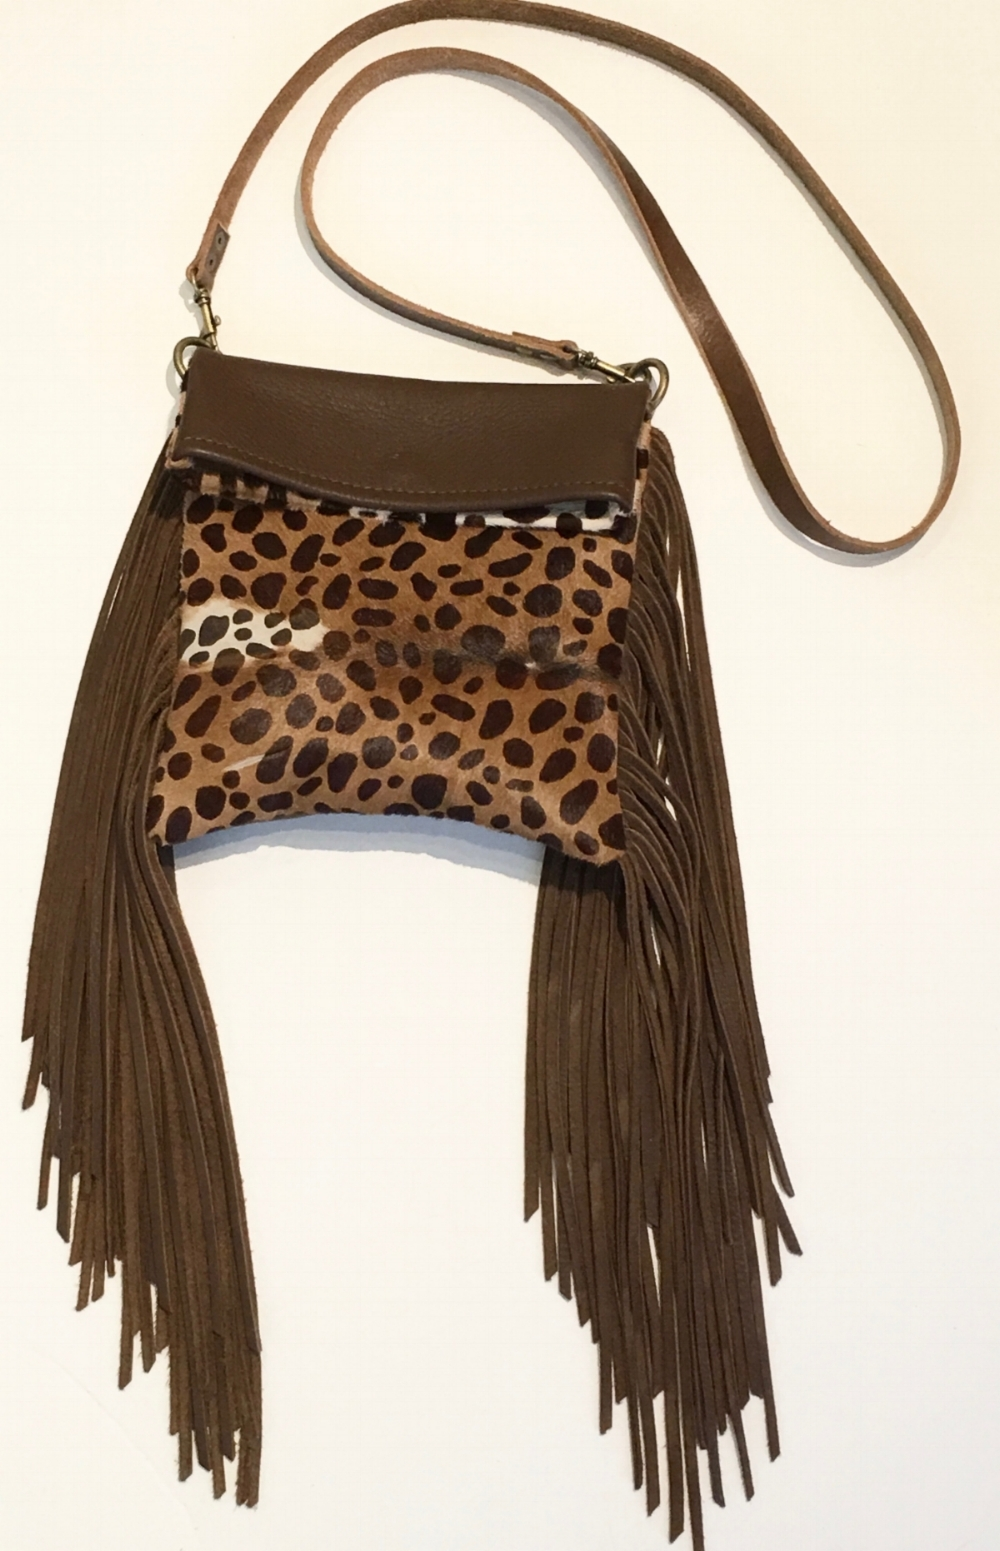 Reversible one side soft brown deerskin, the other hair on hide Handbag with long strap.  Lambskin fringe and magnet closure.  $380., .jpg